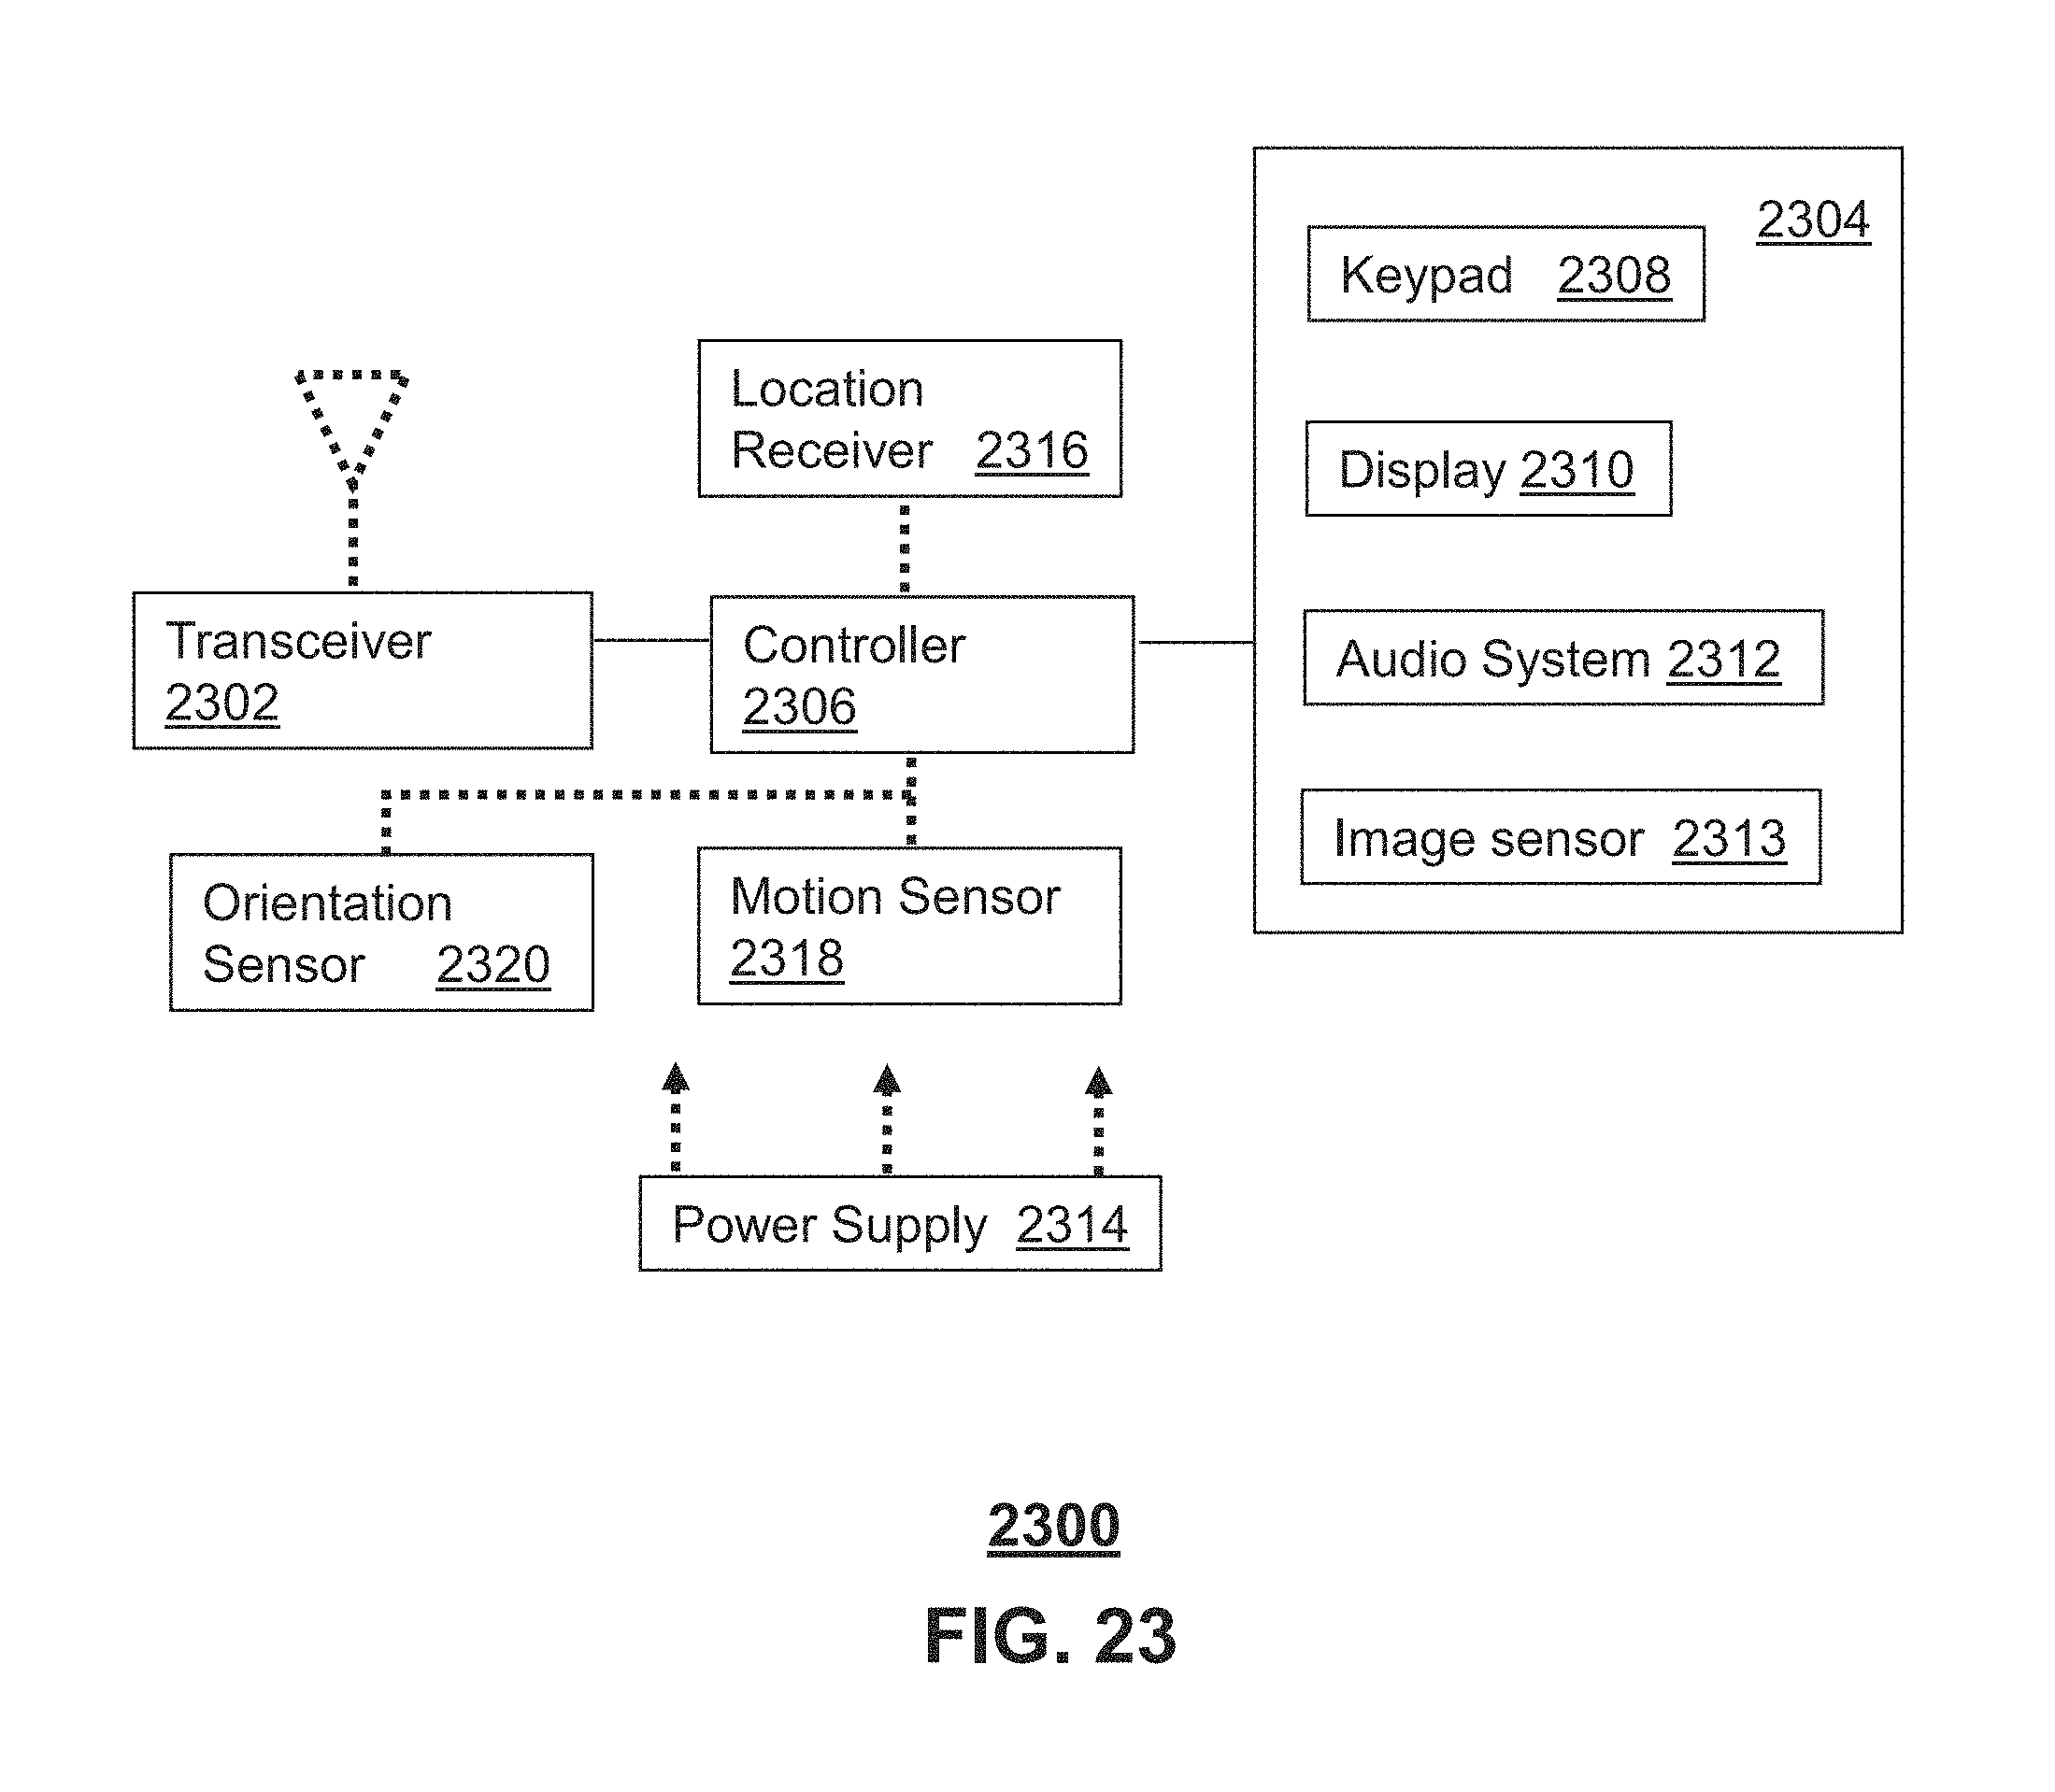 Us9871283b2 Transmission Medium Having A Dielectric Core Comprised Furthermore Garage Door Opener Safety Sensor Wiring Plc Of Plural Members Connected By Ball And Socket Configuration Google Patents